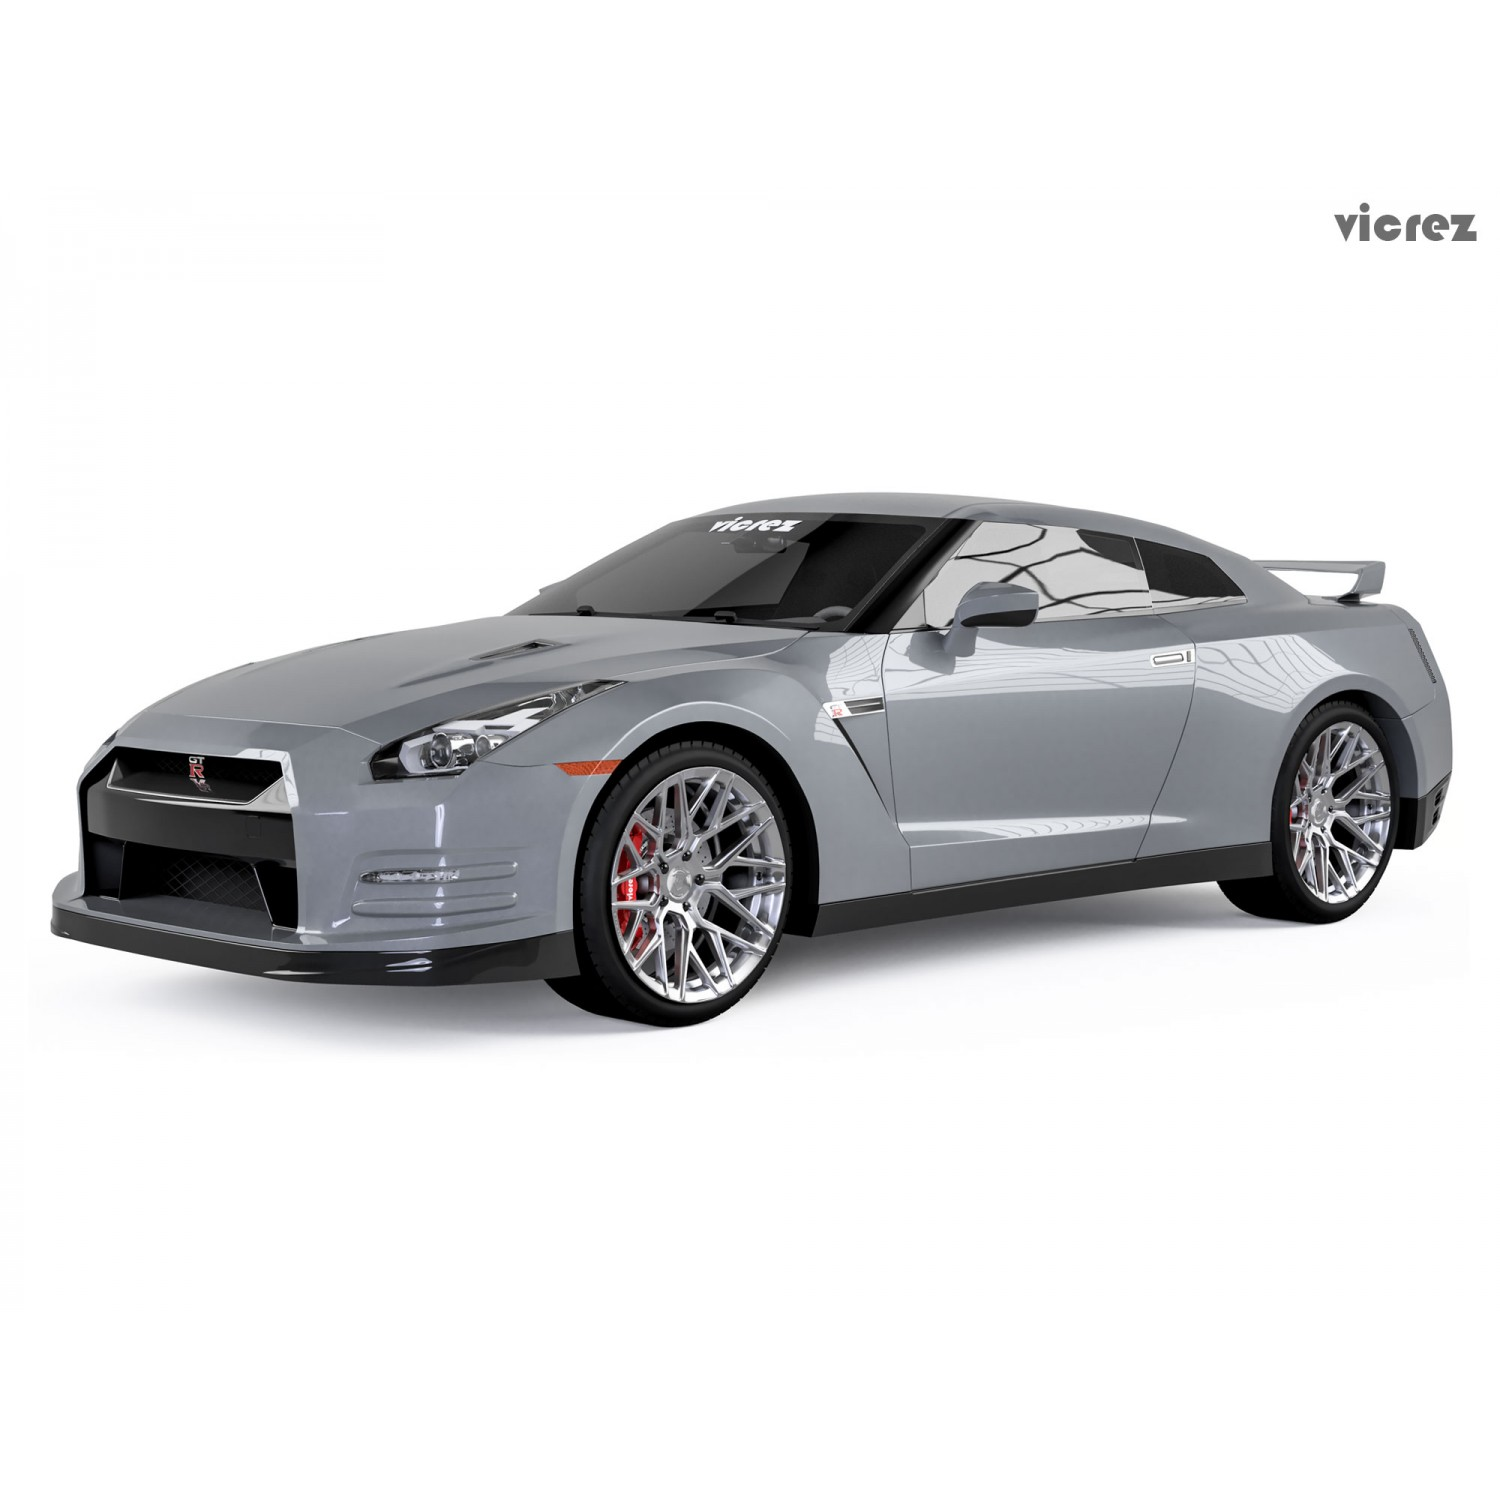 Gtr R35 Drawing Free Download On Clipartmag